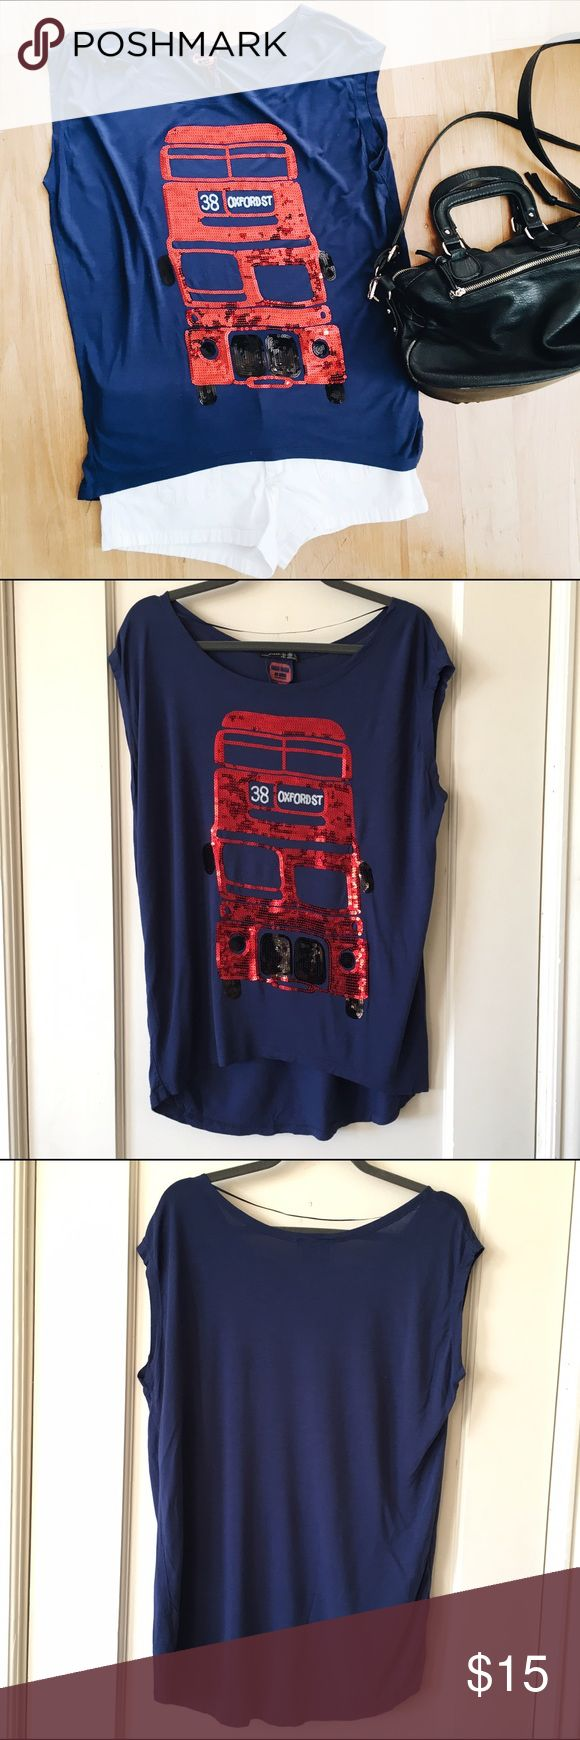 Primark Top with Sequin Double Decker Bus Gently worn dark blue top by Primark or their brand Atmosphere. It has an iconic double decker bus in red sequins. It was bought in the Flagship store in London on Oxford Street. Size US 6 UK 10 Primark Tops Tunics